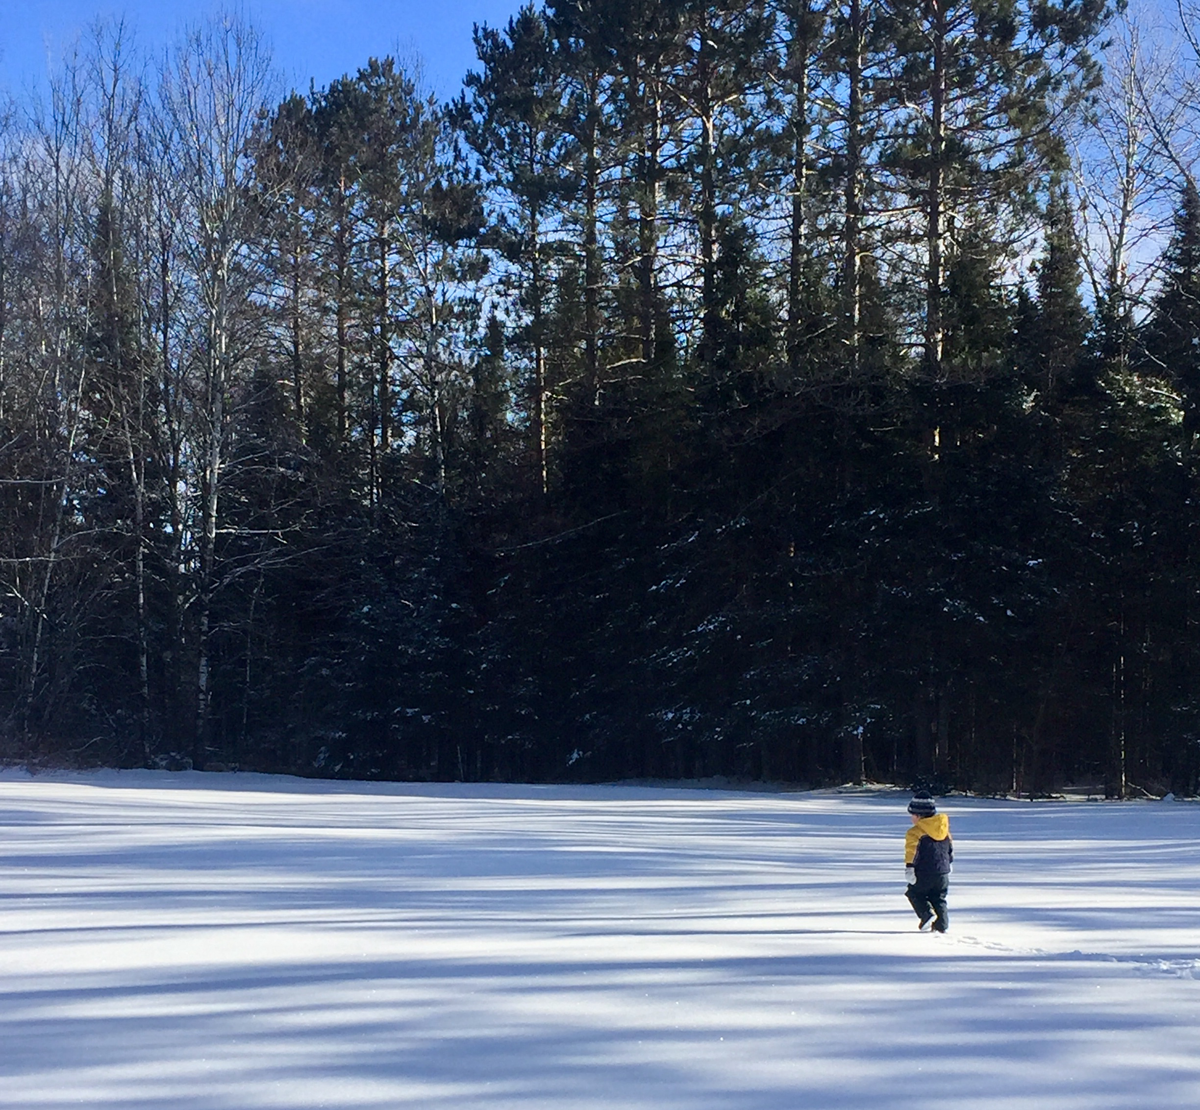 Our two and a half year old son Everett trekking through the wintry north woods of the Upper Peninsula of Michigan.